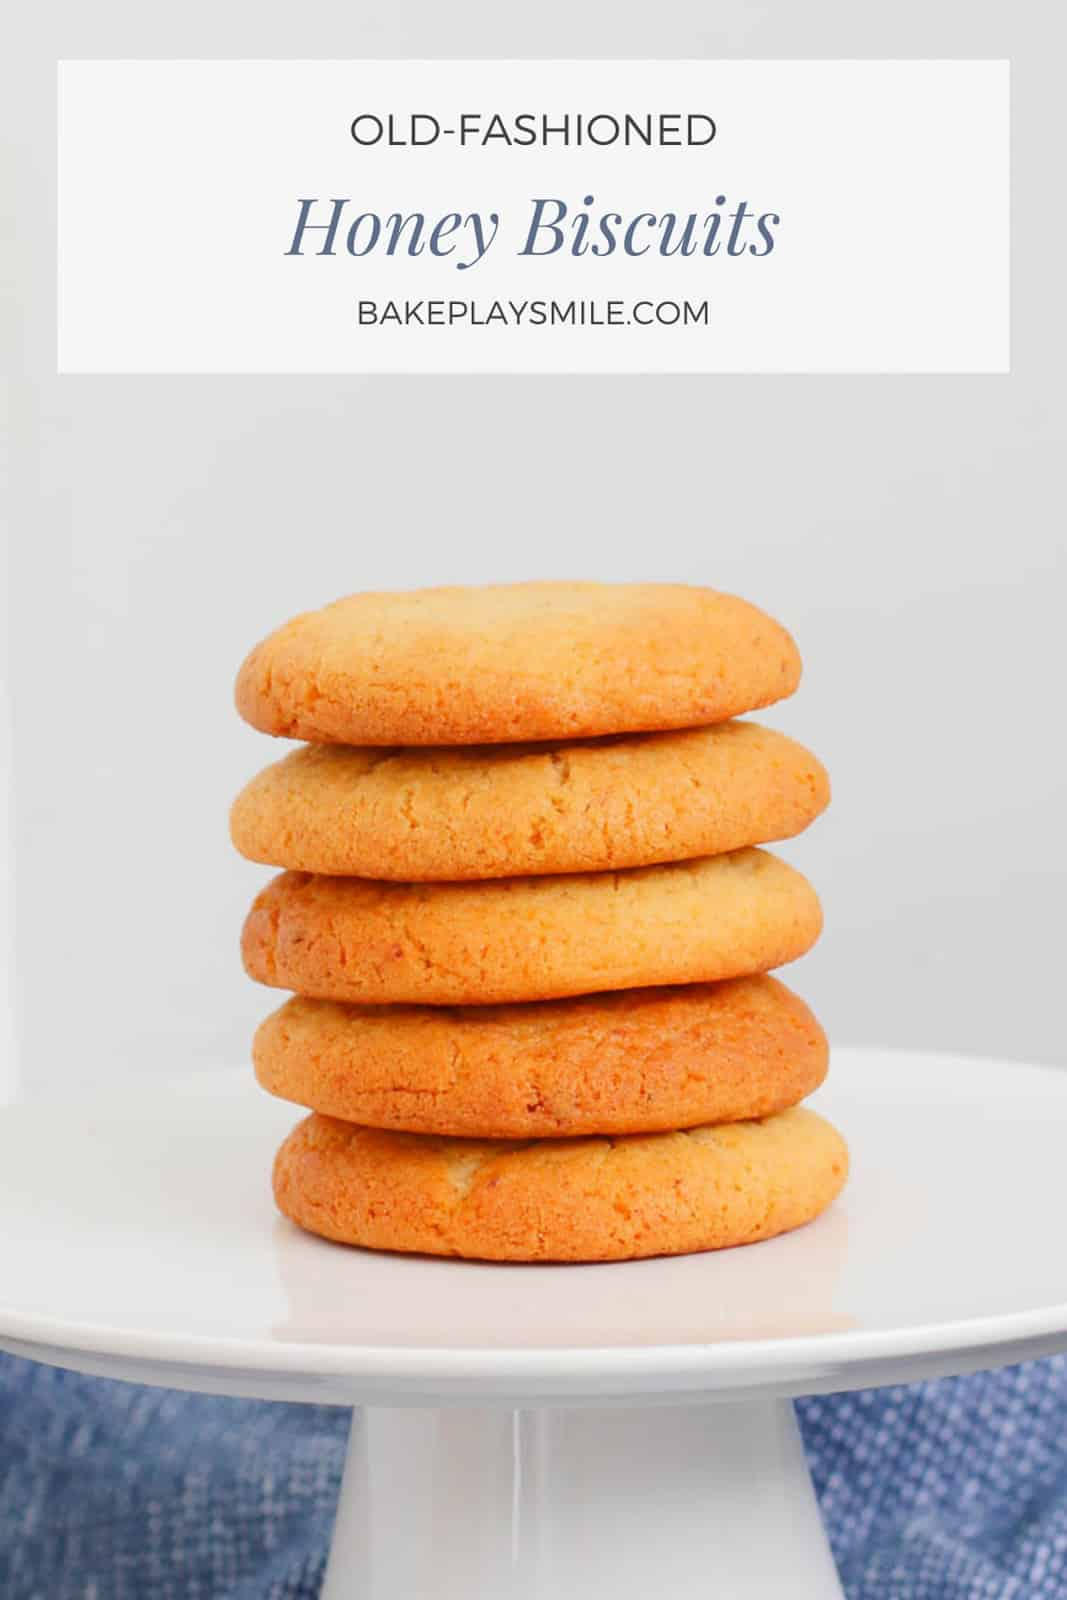 A stack of honey biscuits on a white plate.